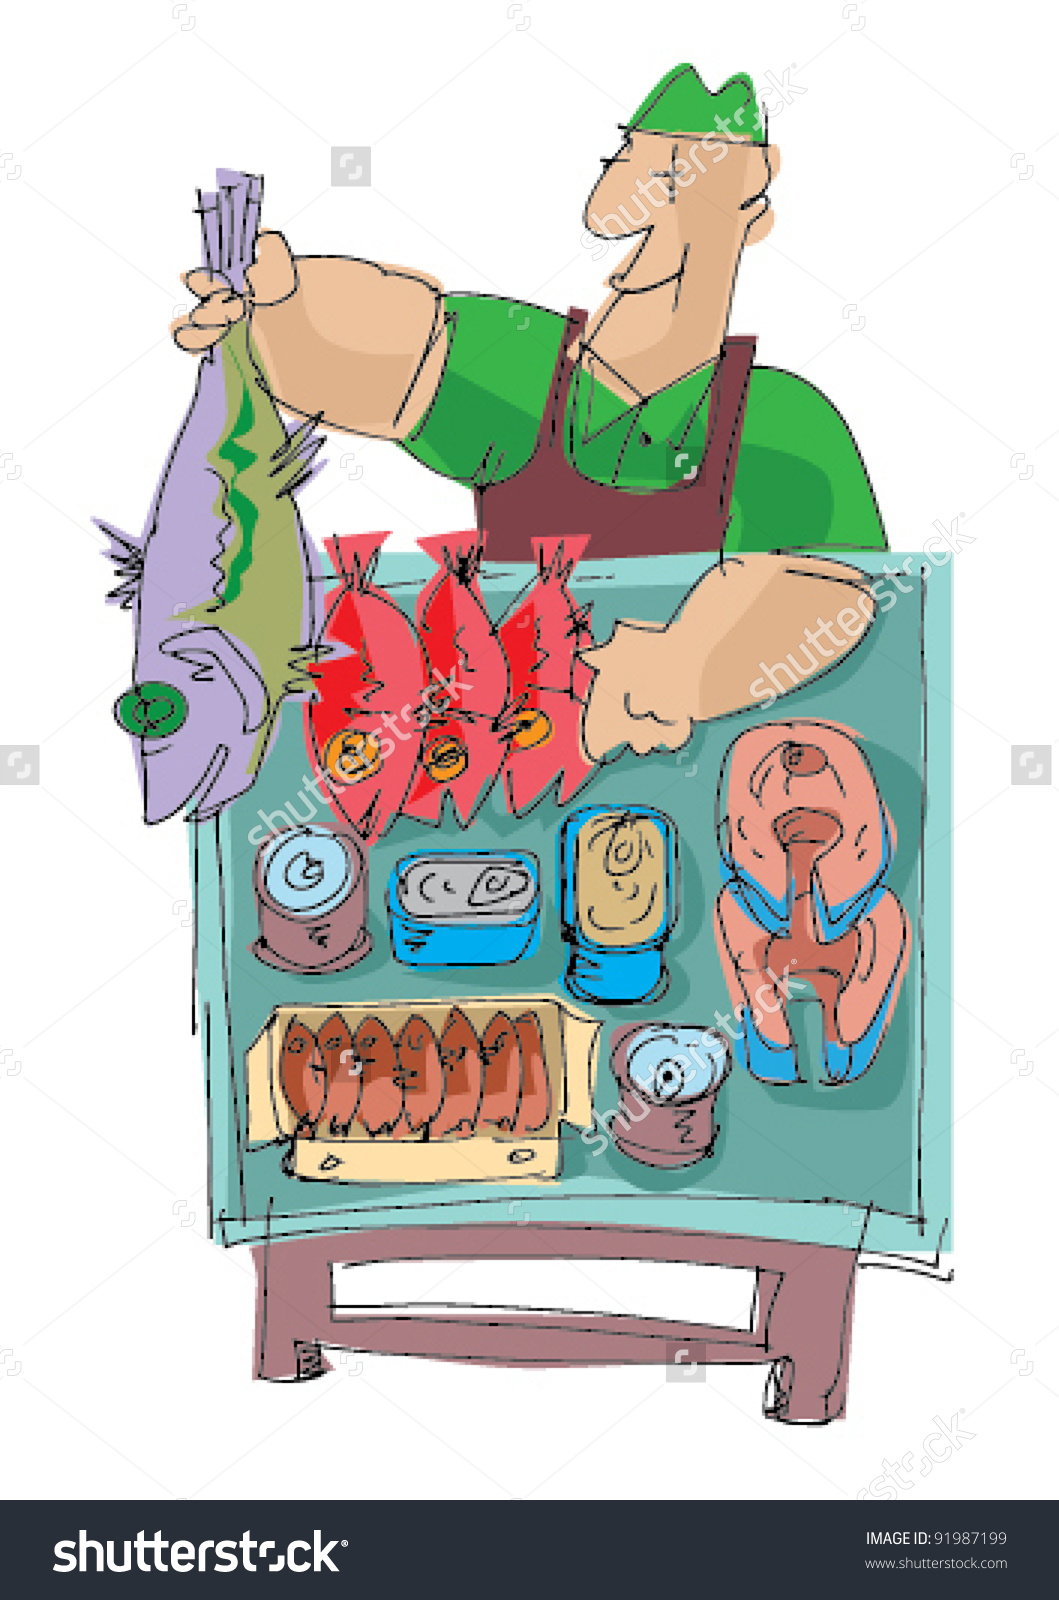 Fish Market Cartoon Stock Vector 91987199.